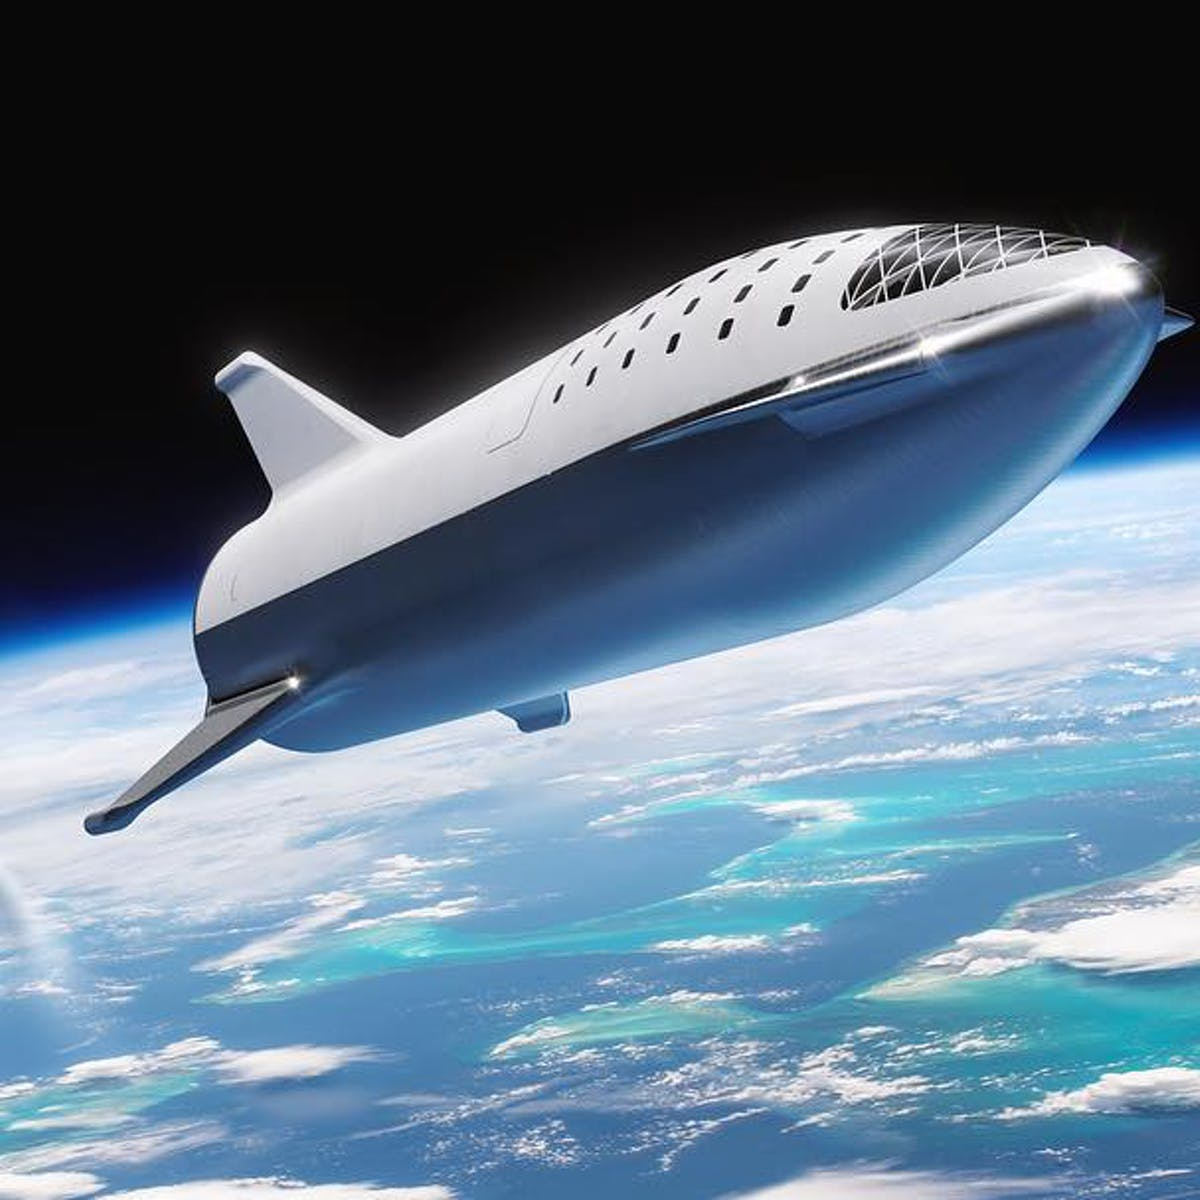 Starship: SpaceX Plans Show Visit to the Edge of Space With Mars-Bound Ship